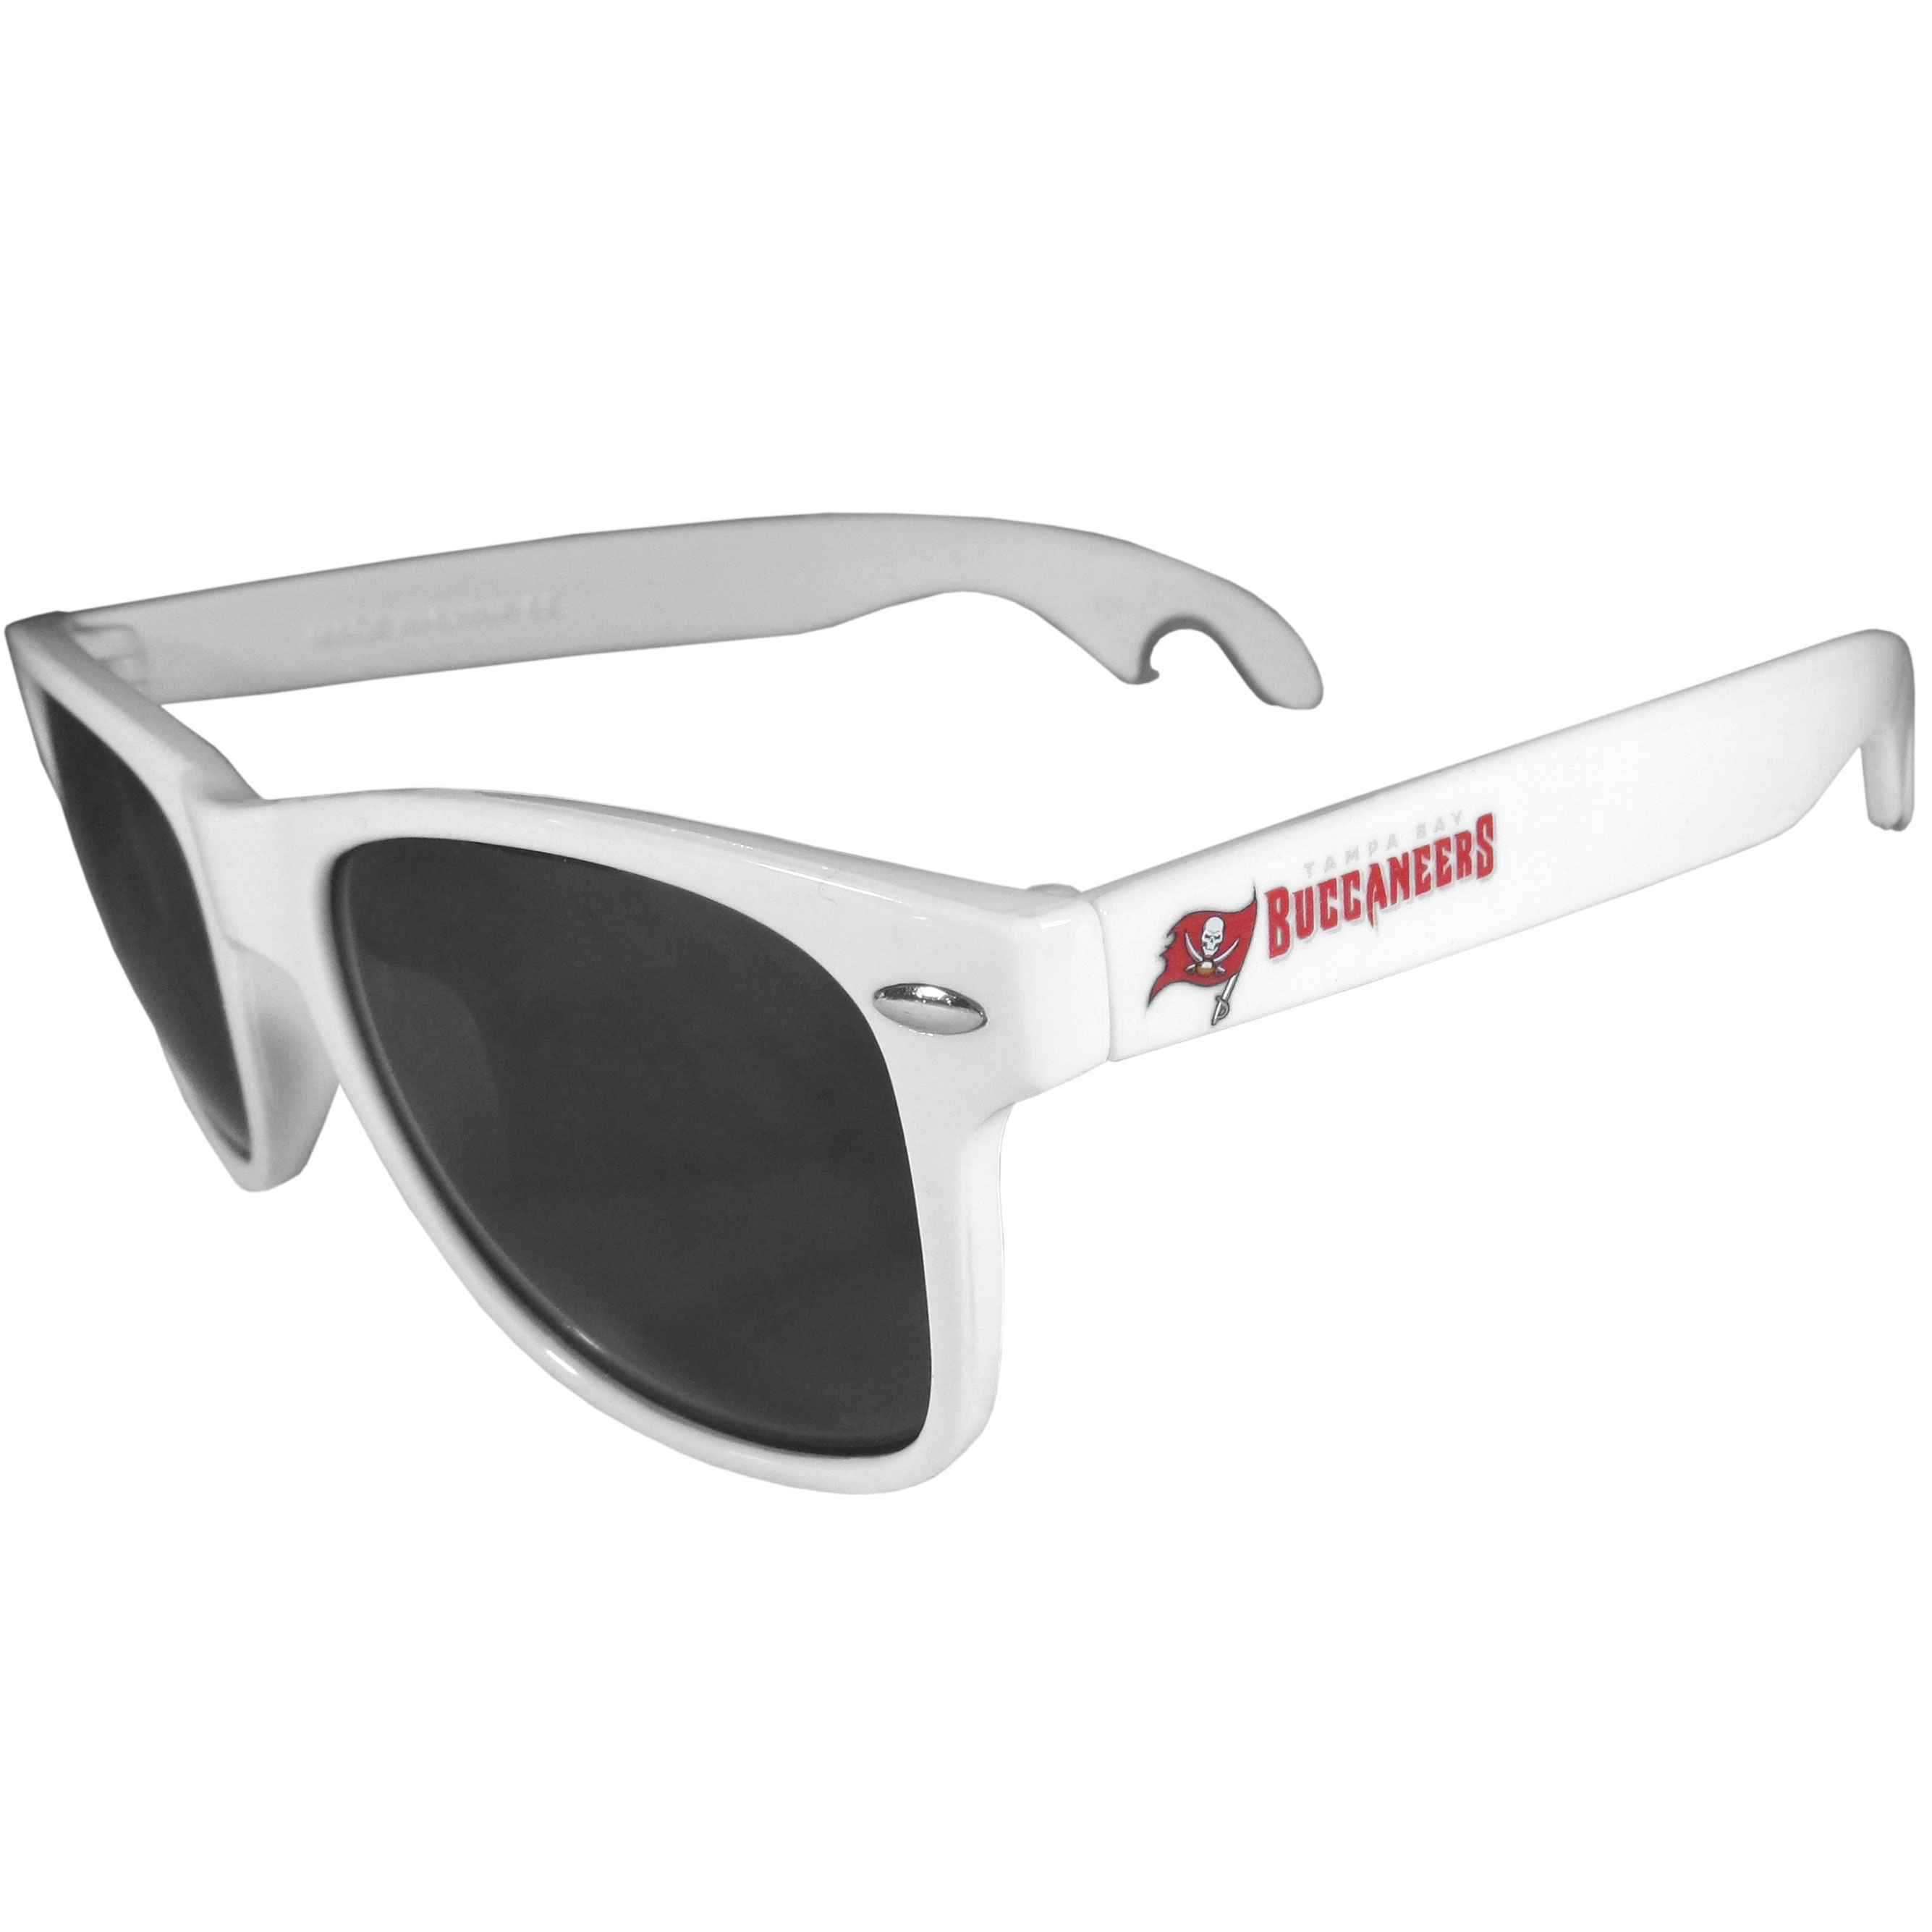 Tampa Bay Buccaneers Beachfarer Bottle Opener Sunglasses, White - Seriously, these sunglasses open bottles! Keep the party going with these amazing Tampa Bay Buccaneers bottle opener sunglasses. The stylish retro frames feature team designs on the arms and functional bottle openers on the end of the arms. Whether you are at the beach or having a backyard BBQ on game day, these shades will keep your eyes protected with 100% UVA/UVB protection and keep you hydrated with the handy bottle opener arms.